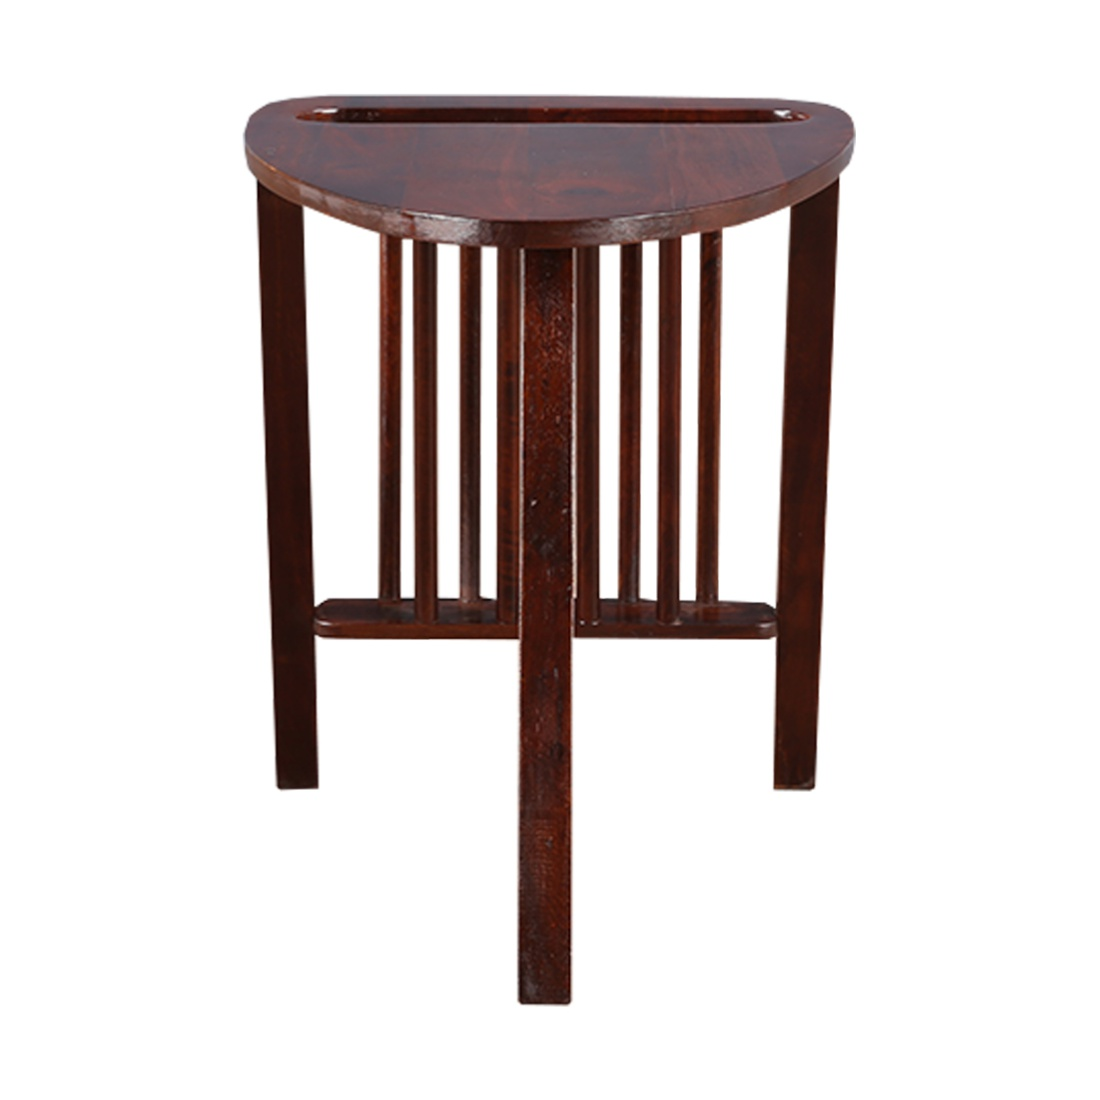 Noel Rubber Wood Outdoor Table in Chest Nut Colour by HomeTown